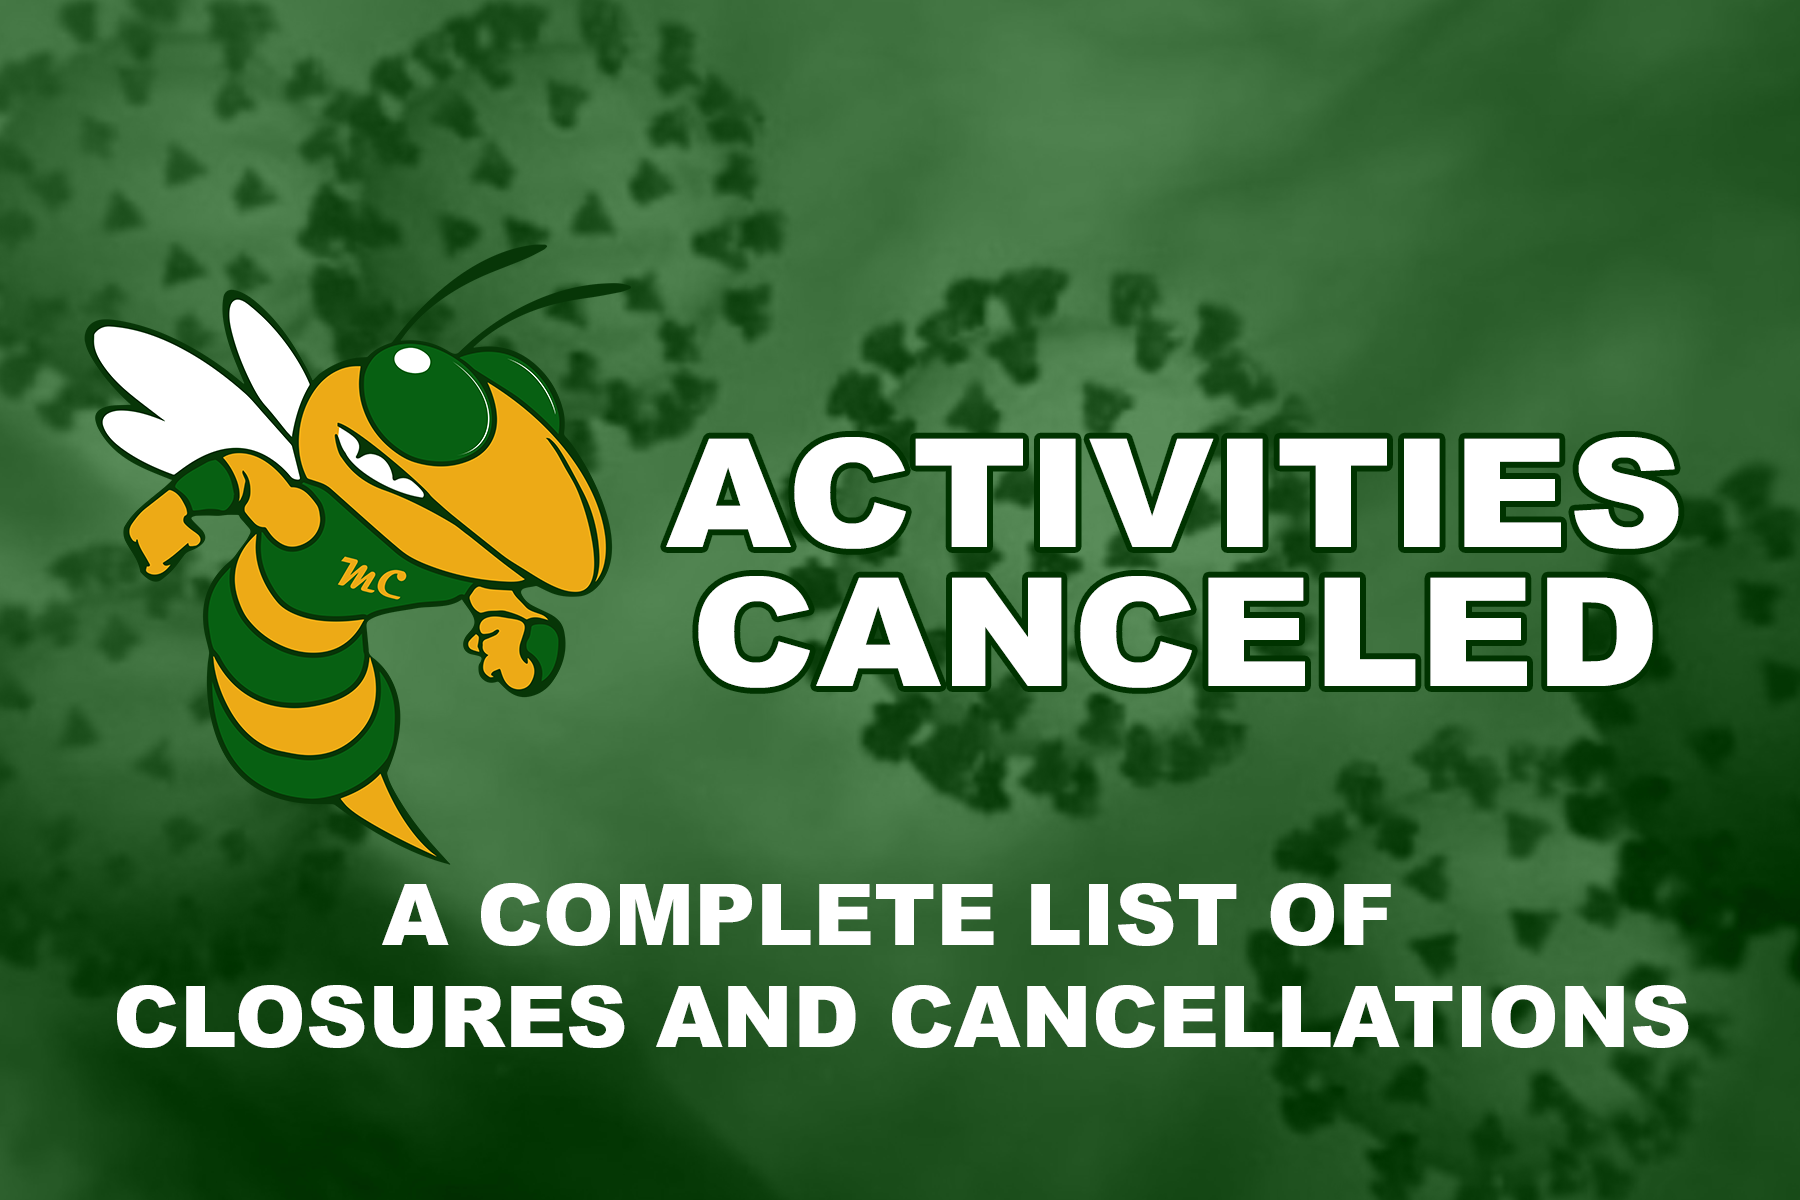 Activities Canceled